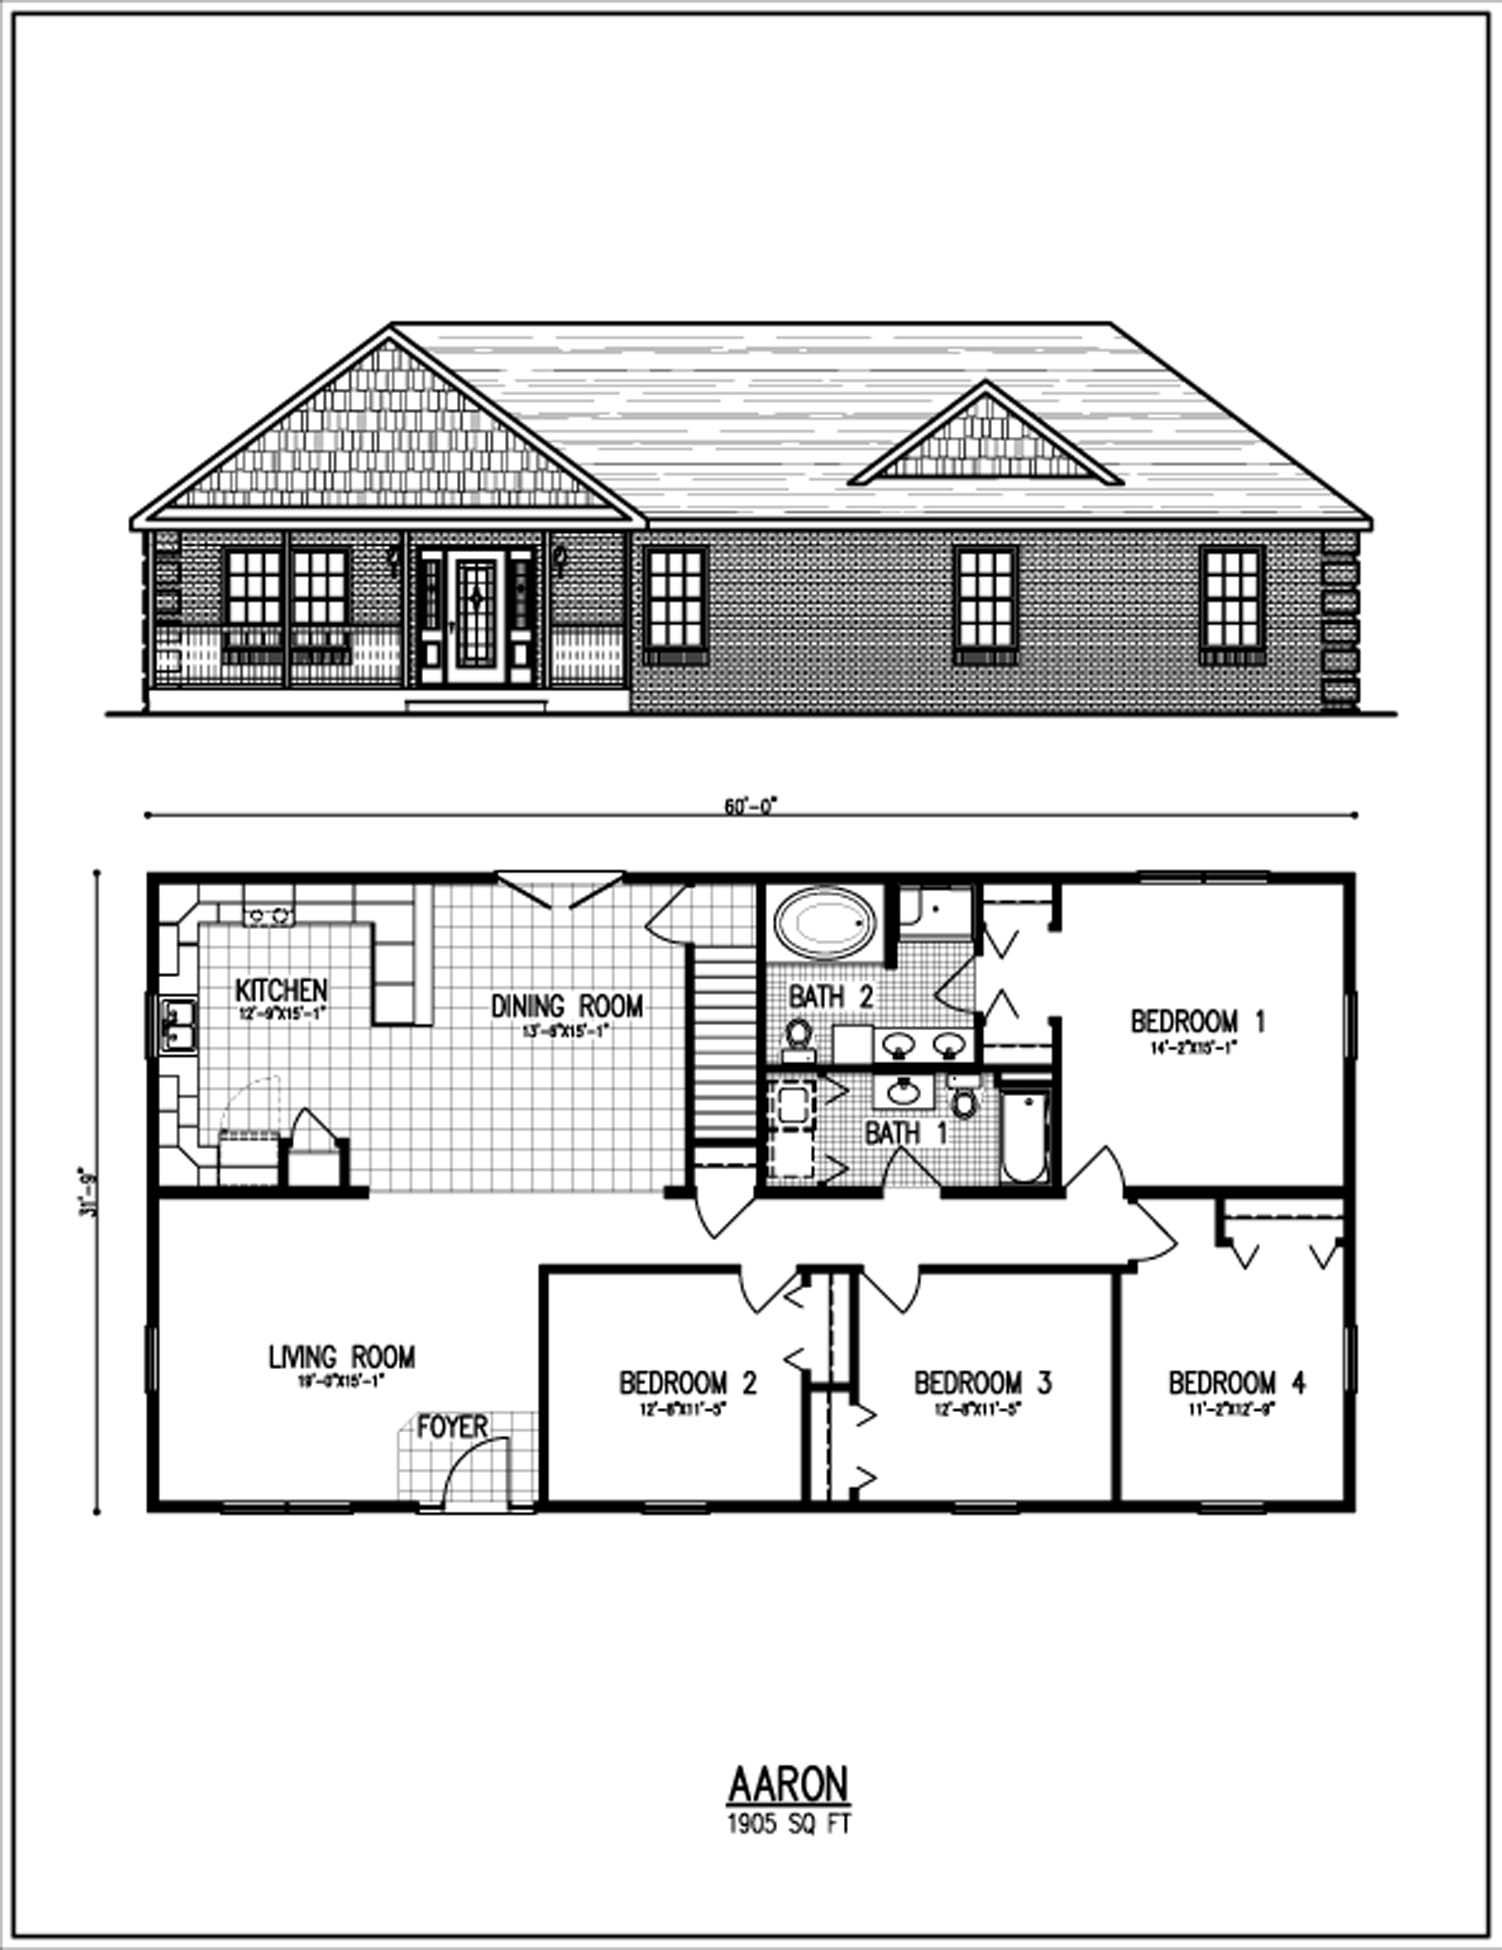 All american homes floorplan center staffordcape mynexthome pinterest ranch style Free house layouts floor plans